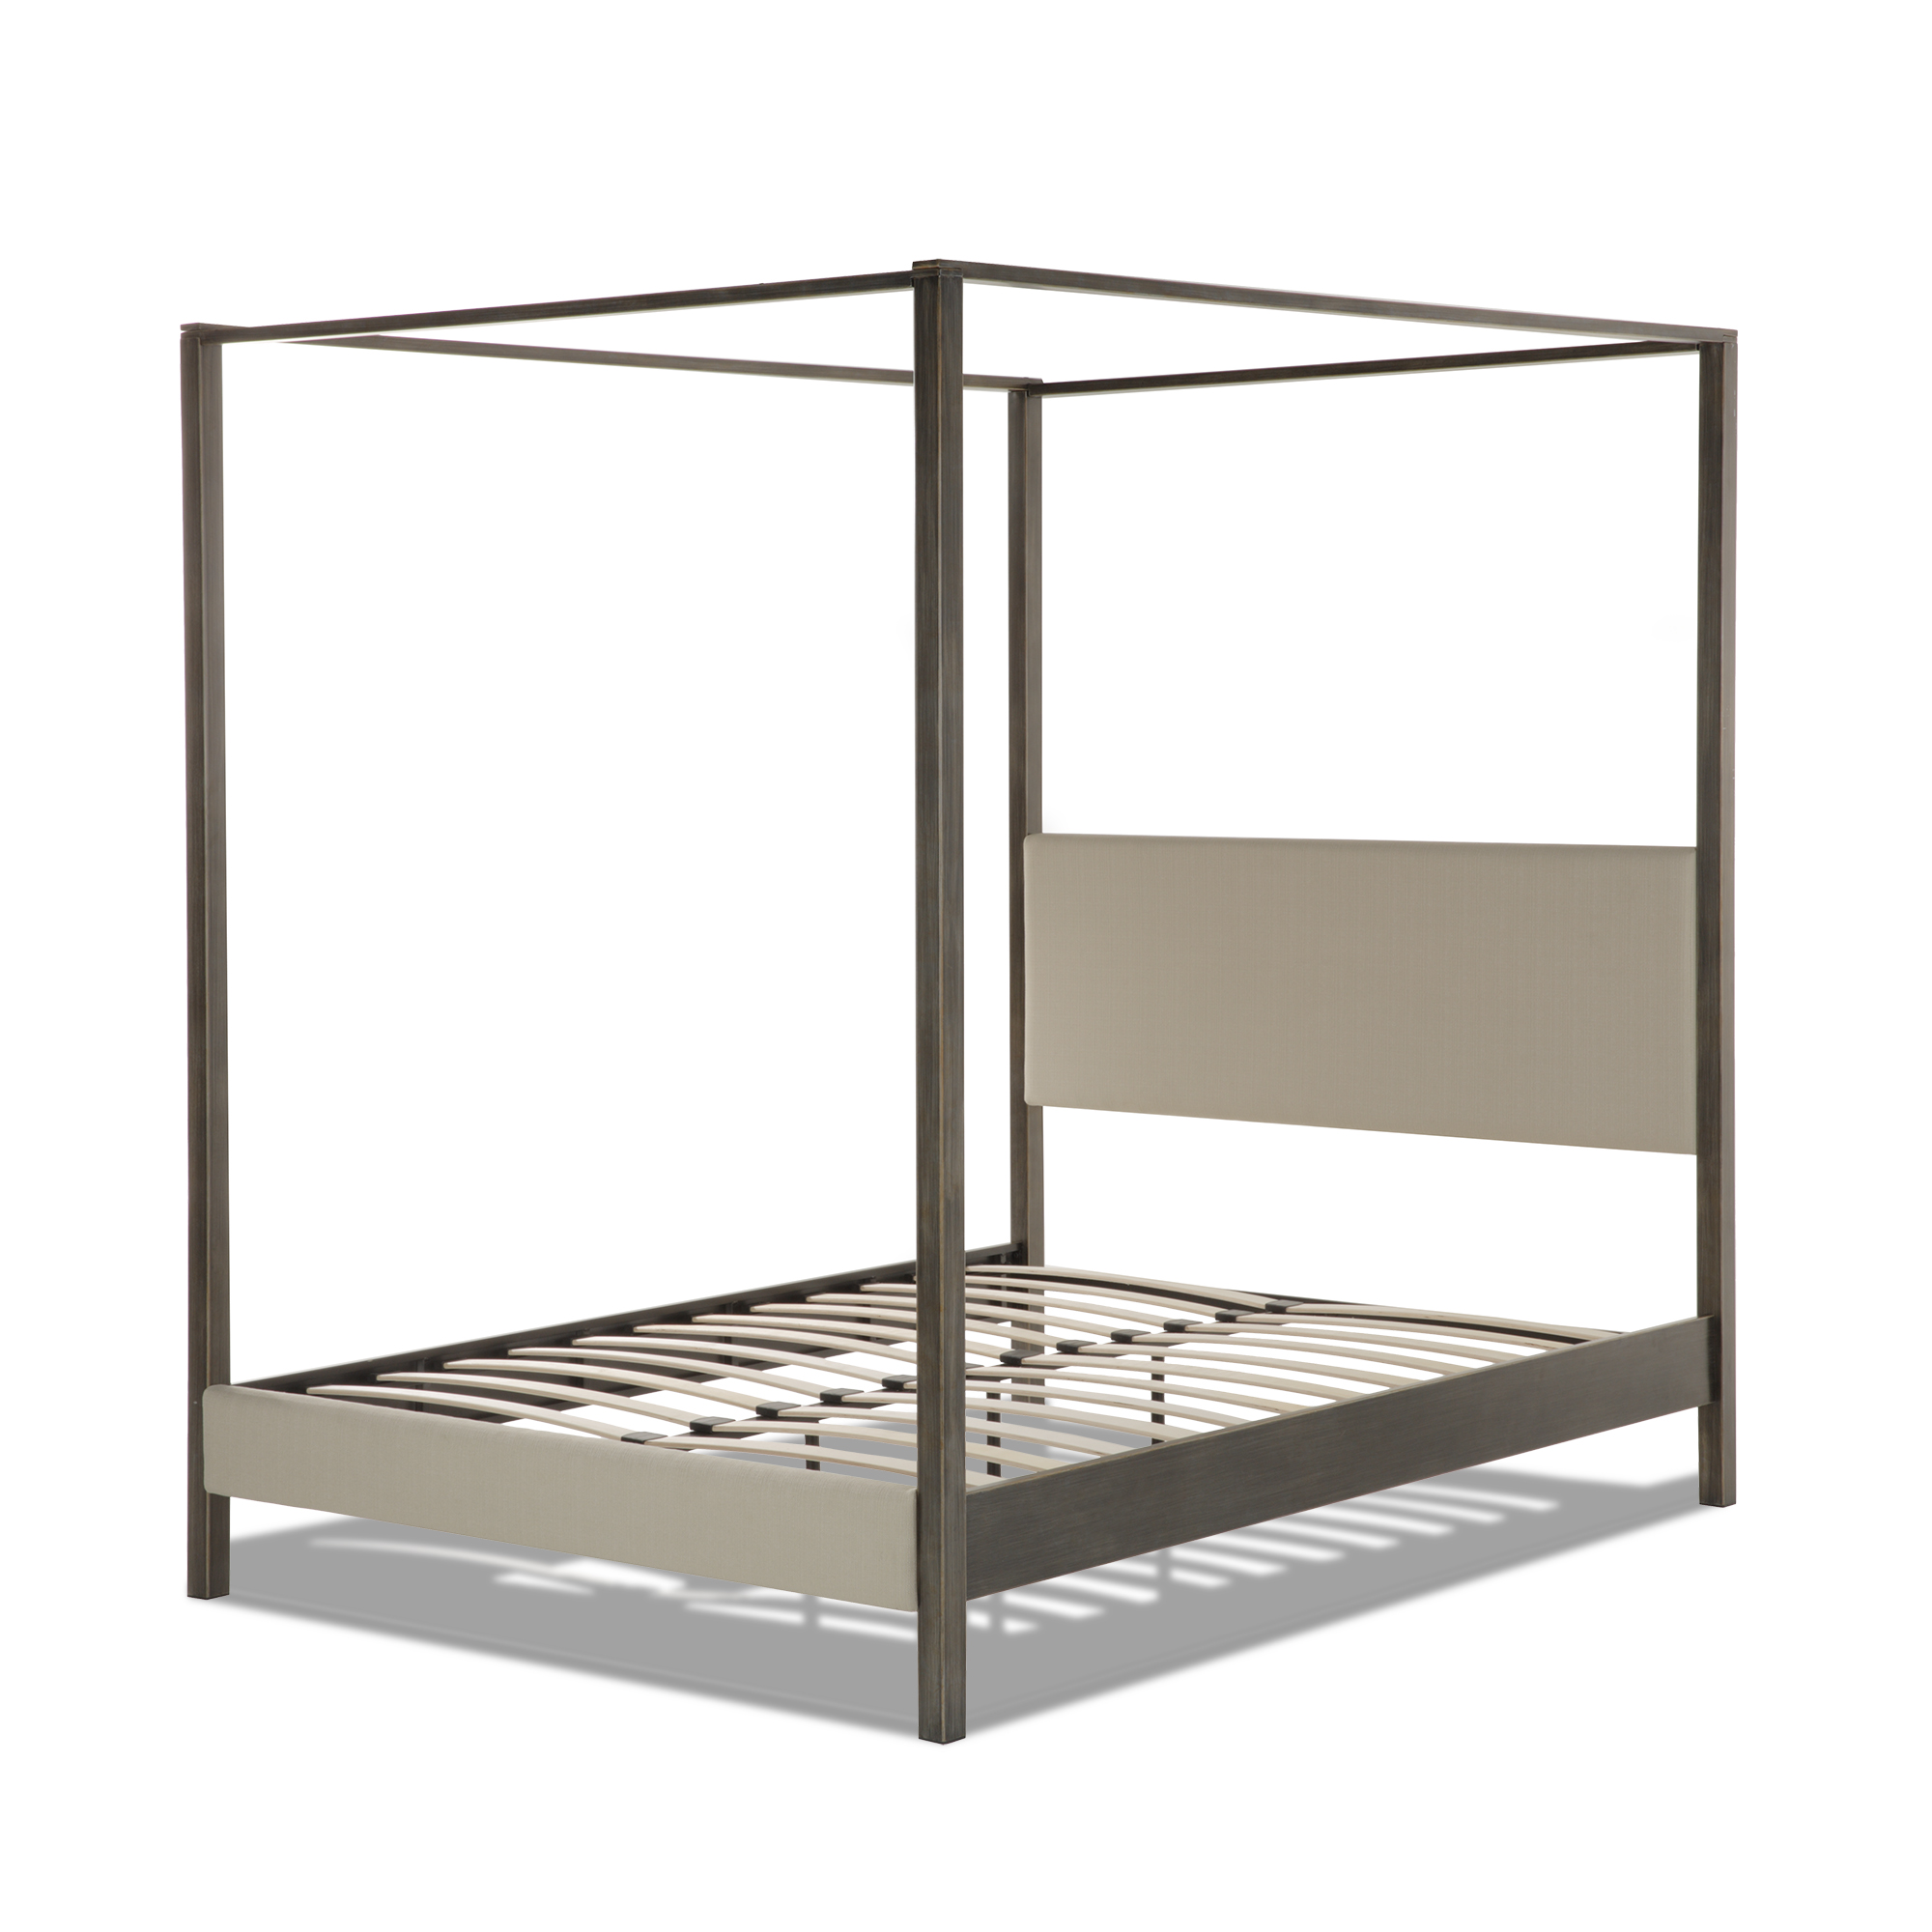 Avalon Complete Metal Canopy Platform Bed and Bedding Support System with Platinum Upholstery and 80-  sc 1 st  Design Center Furniture & B71625 in by Fashion Bed Group in Orange CA - Avalon Complete Metal ...